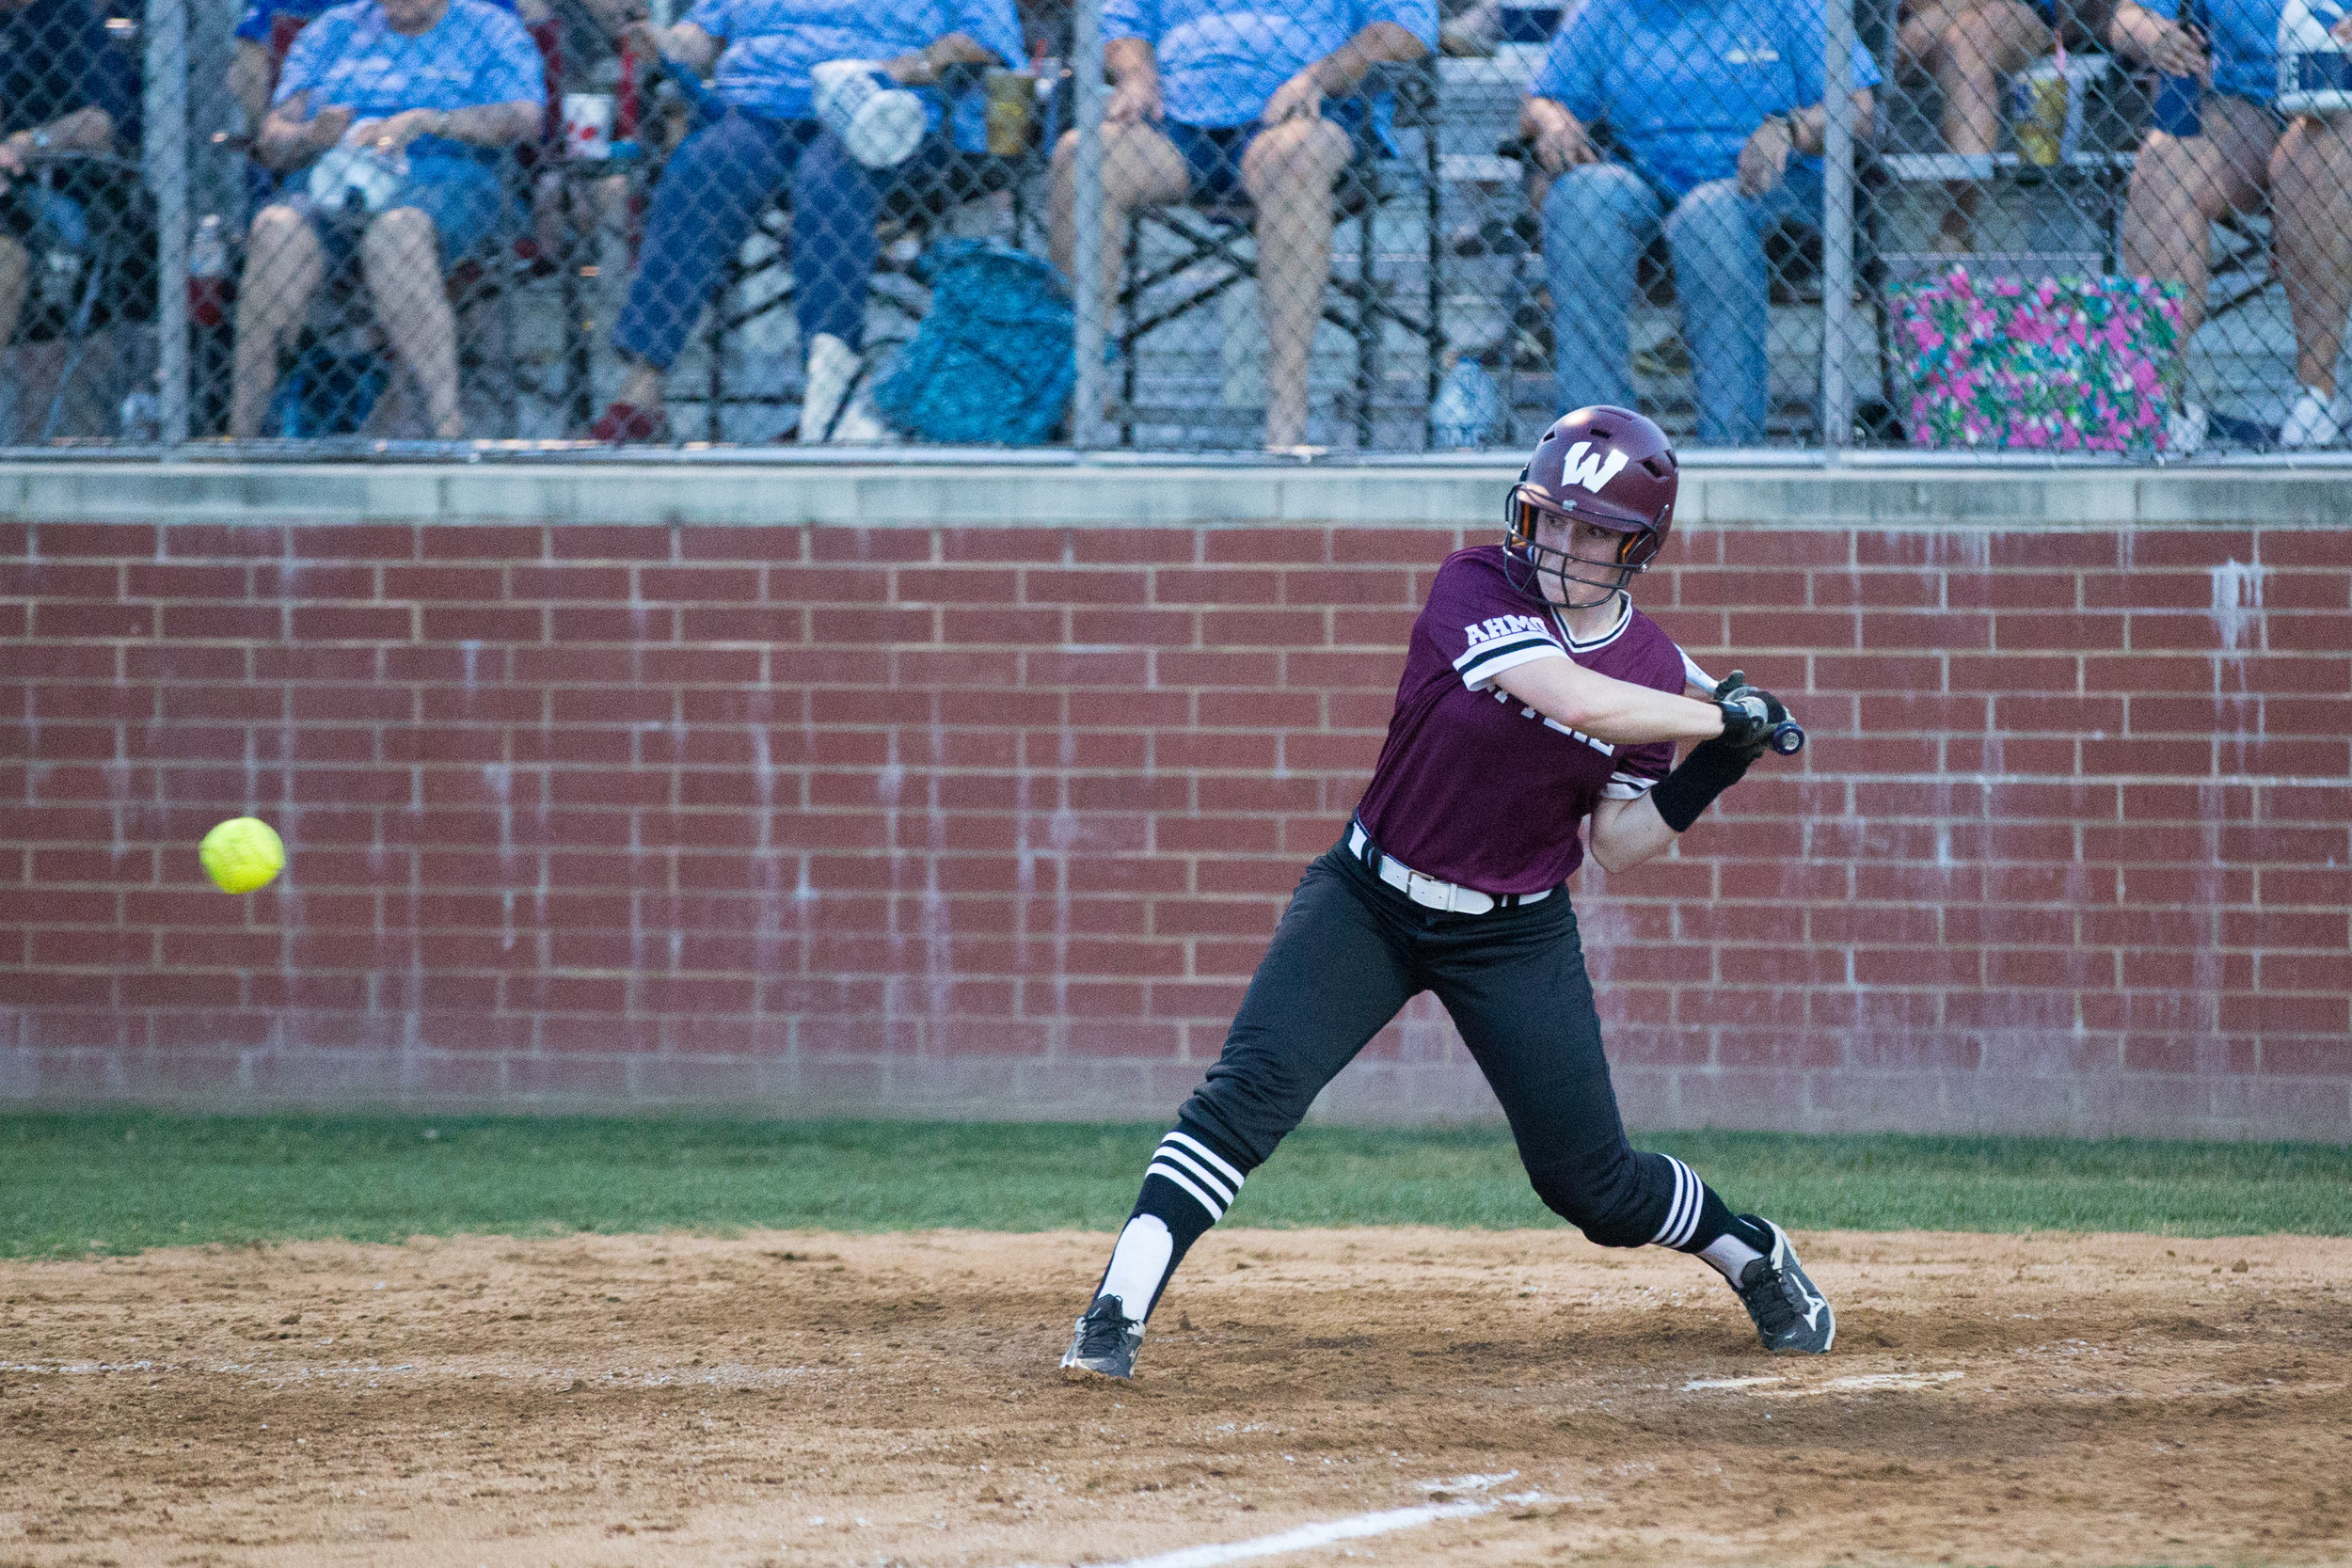 5_18 Wylie Softball-161.jpg